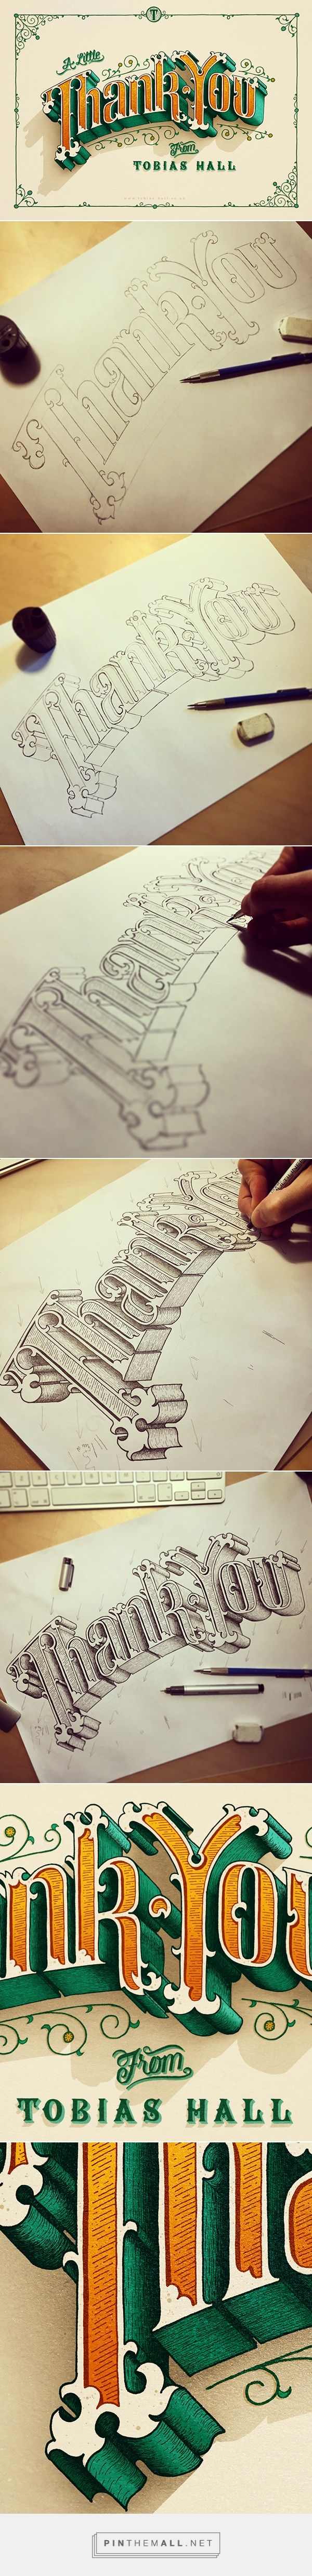 Stunning 3D style hand drawn type! Gorgeous shading and an impressive level of detail.